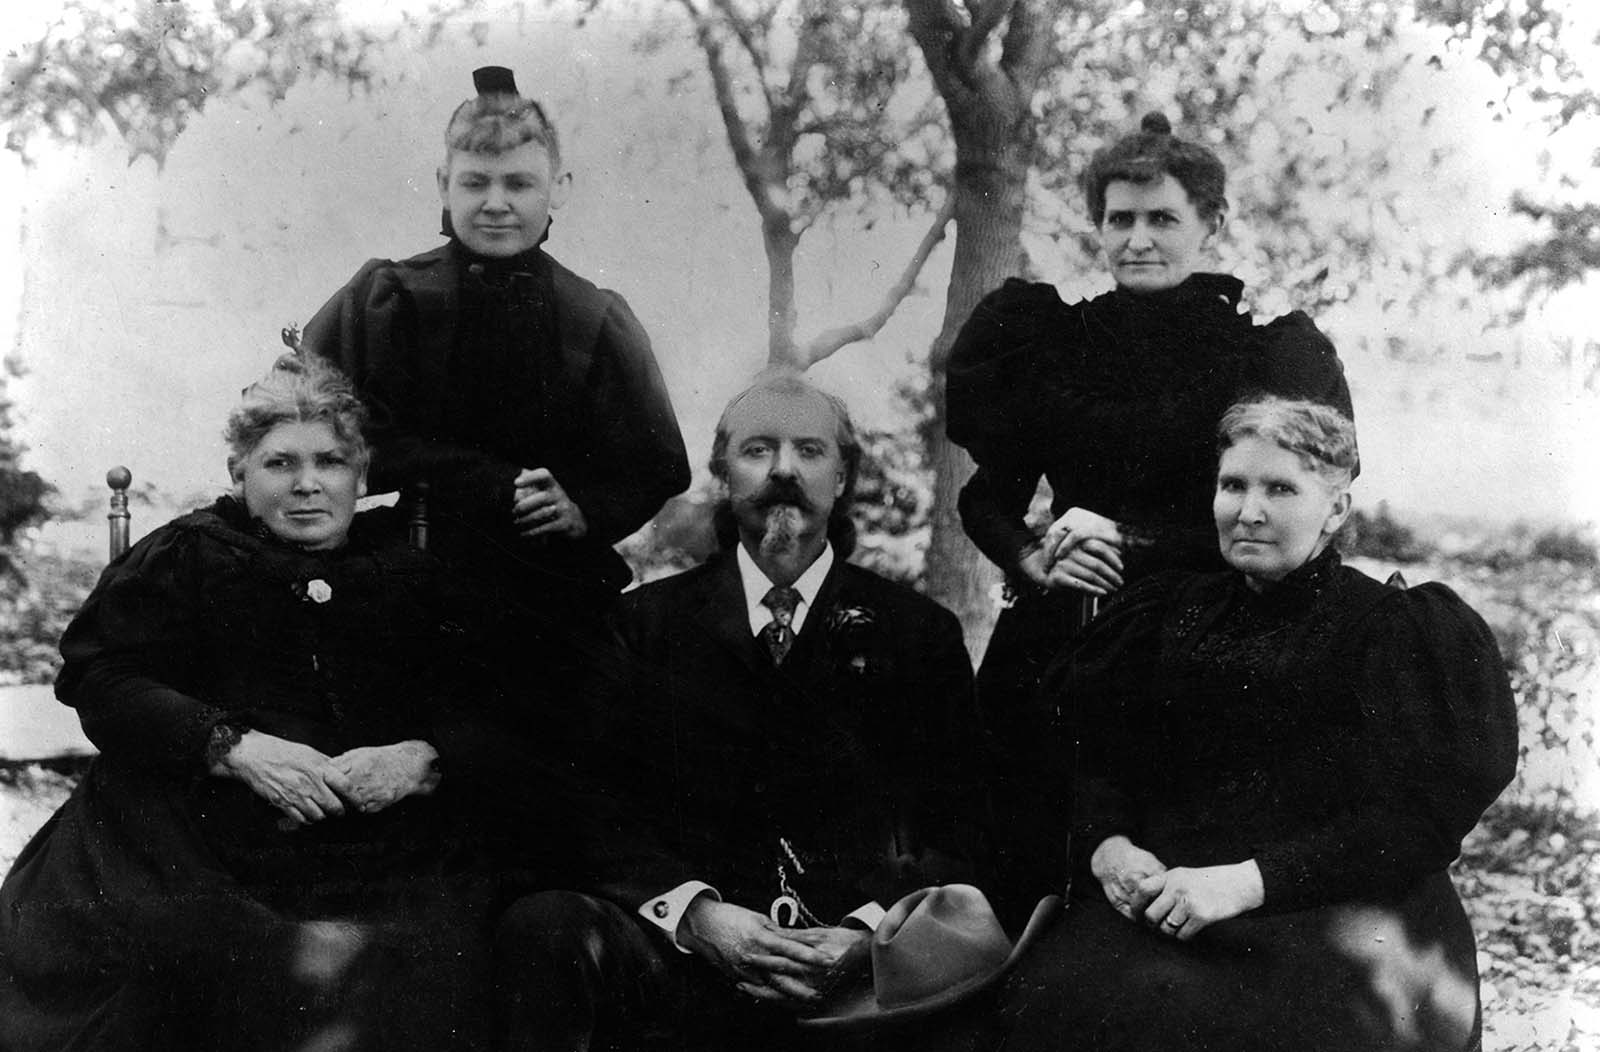 William F. Cody and his sisters, 1896. MS 6 William F. Cody Collection, McCracken Research Library. P.69.1057